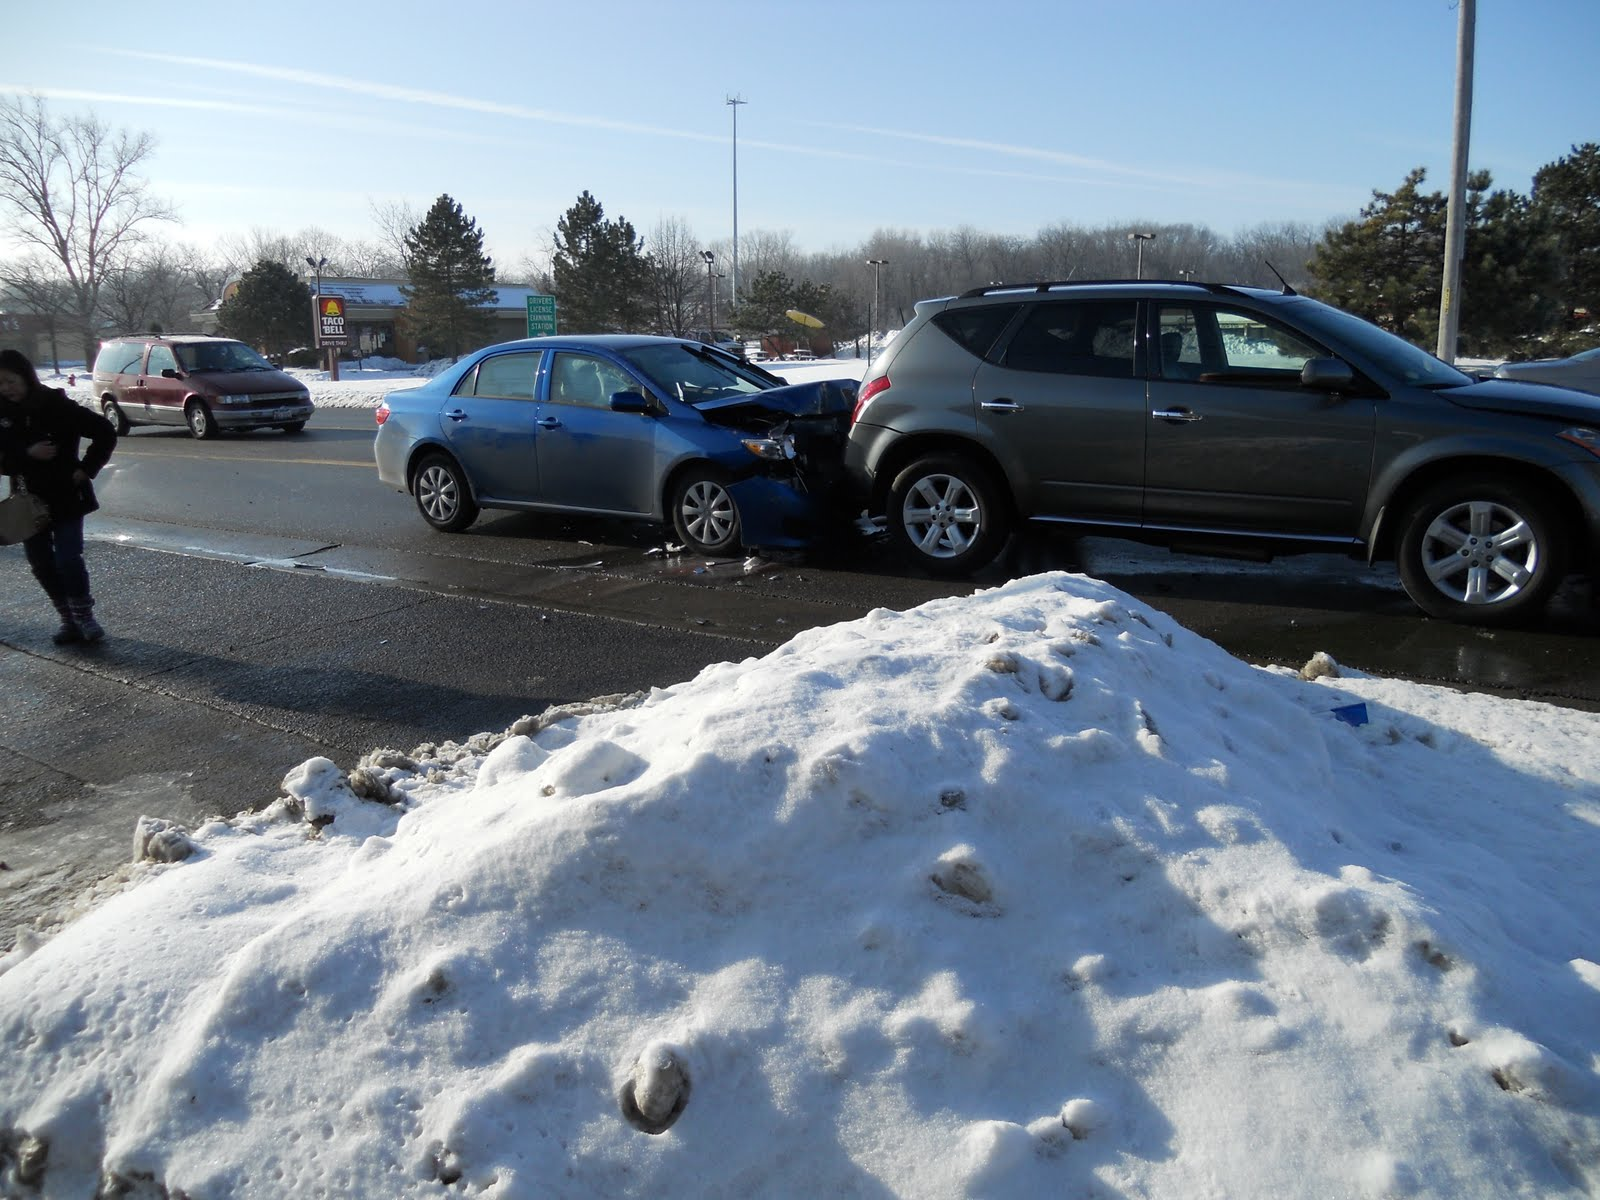 Six-car fender bender in Woodstock - The Crittenden Automotive Library